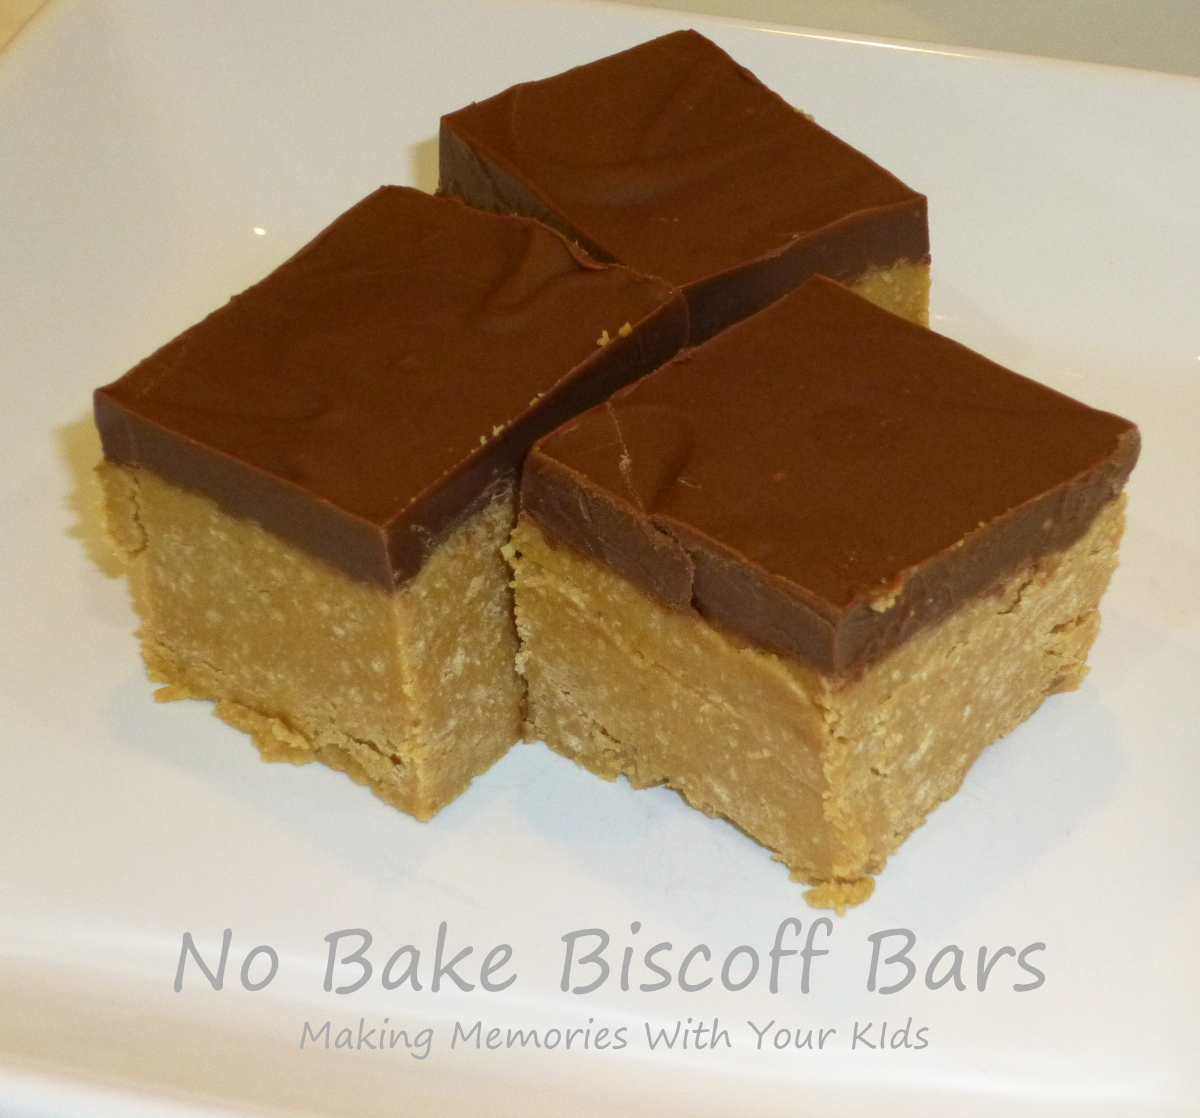 No Bake Biscoff Bars - Making Memories With Your Kids